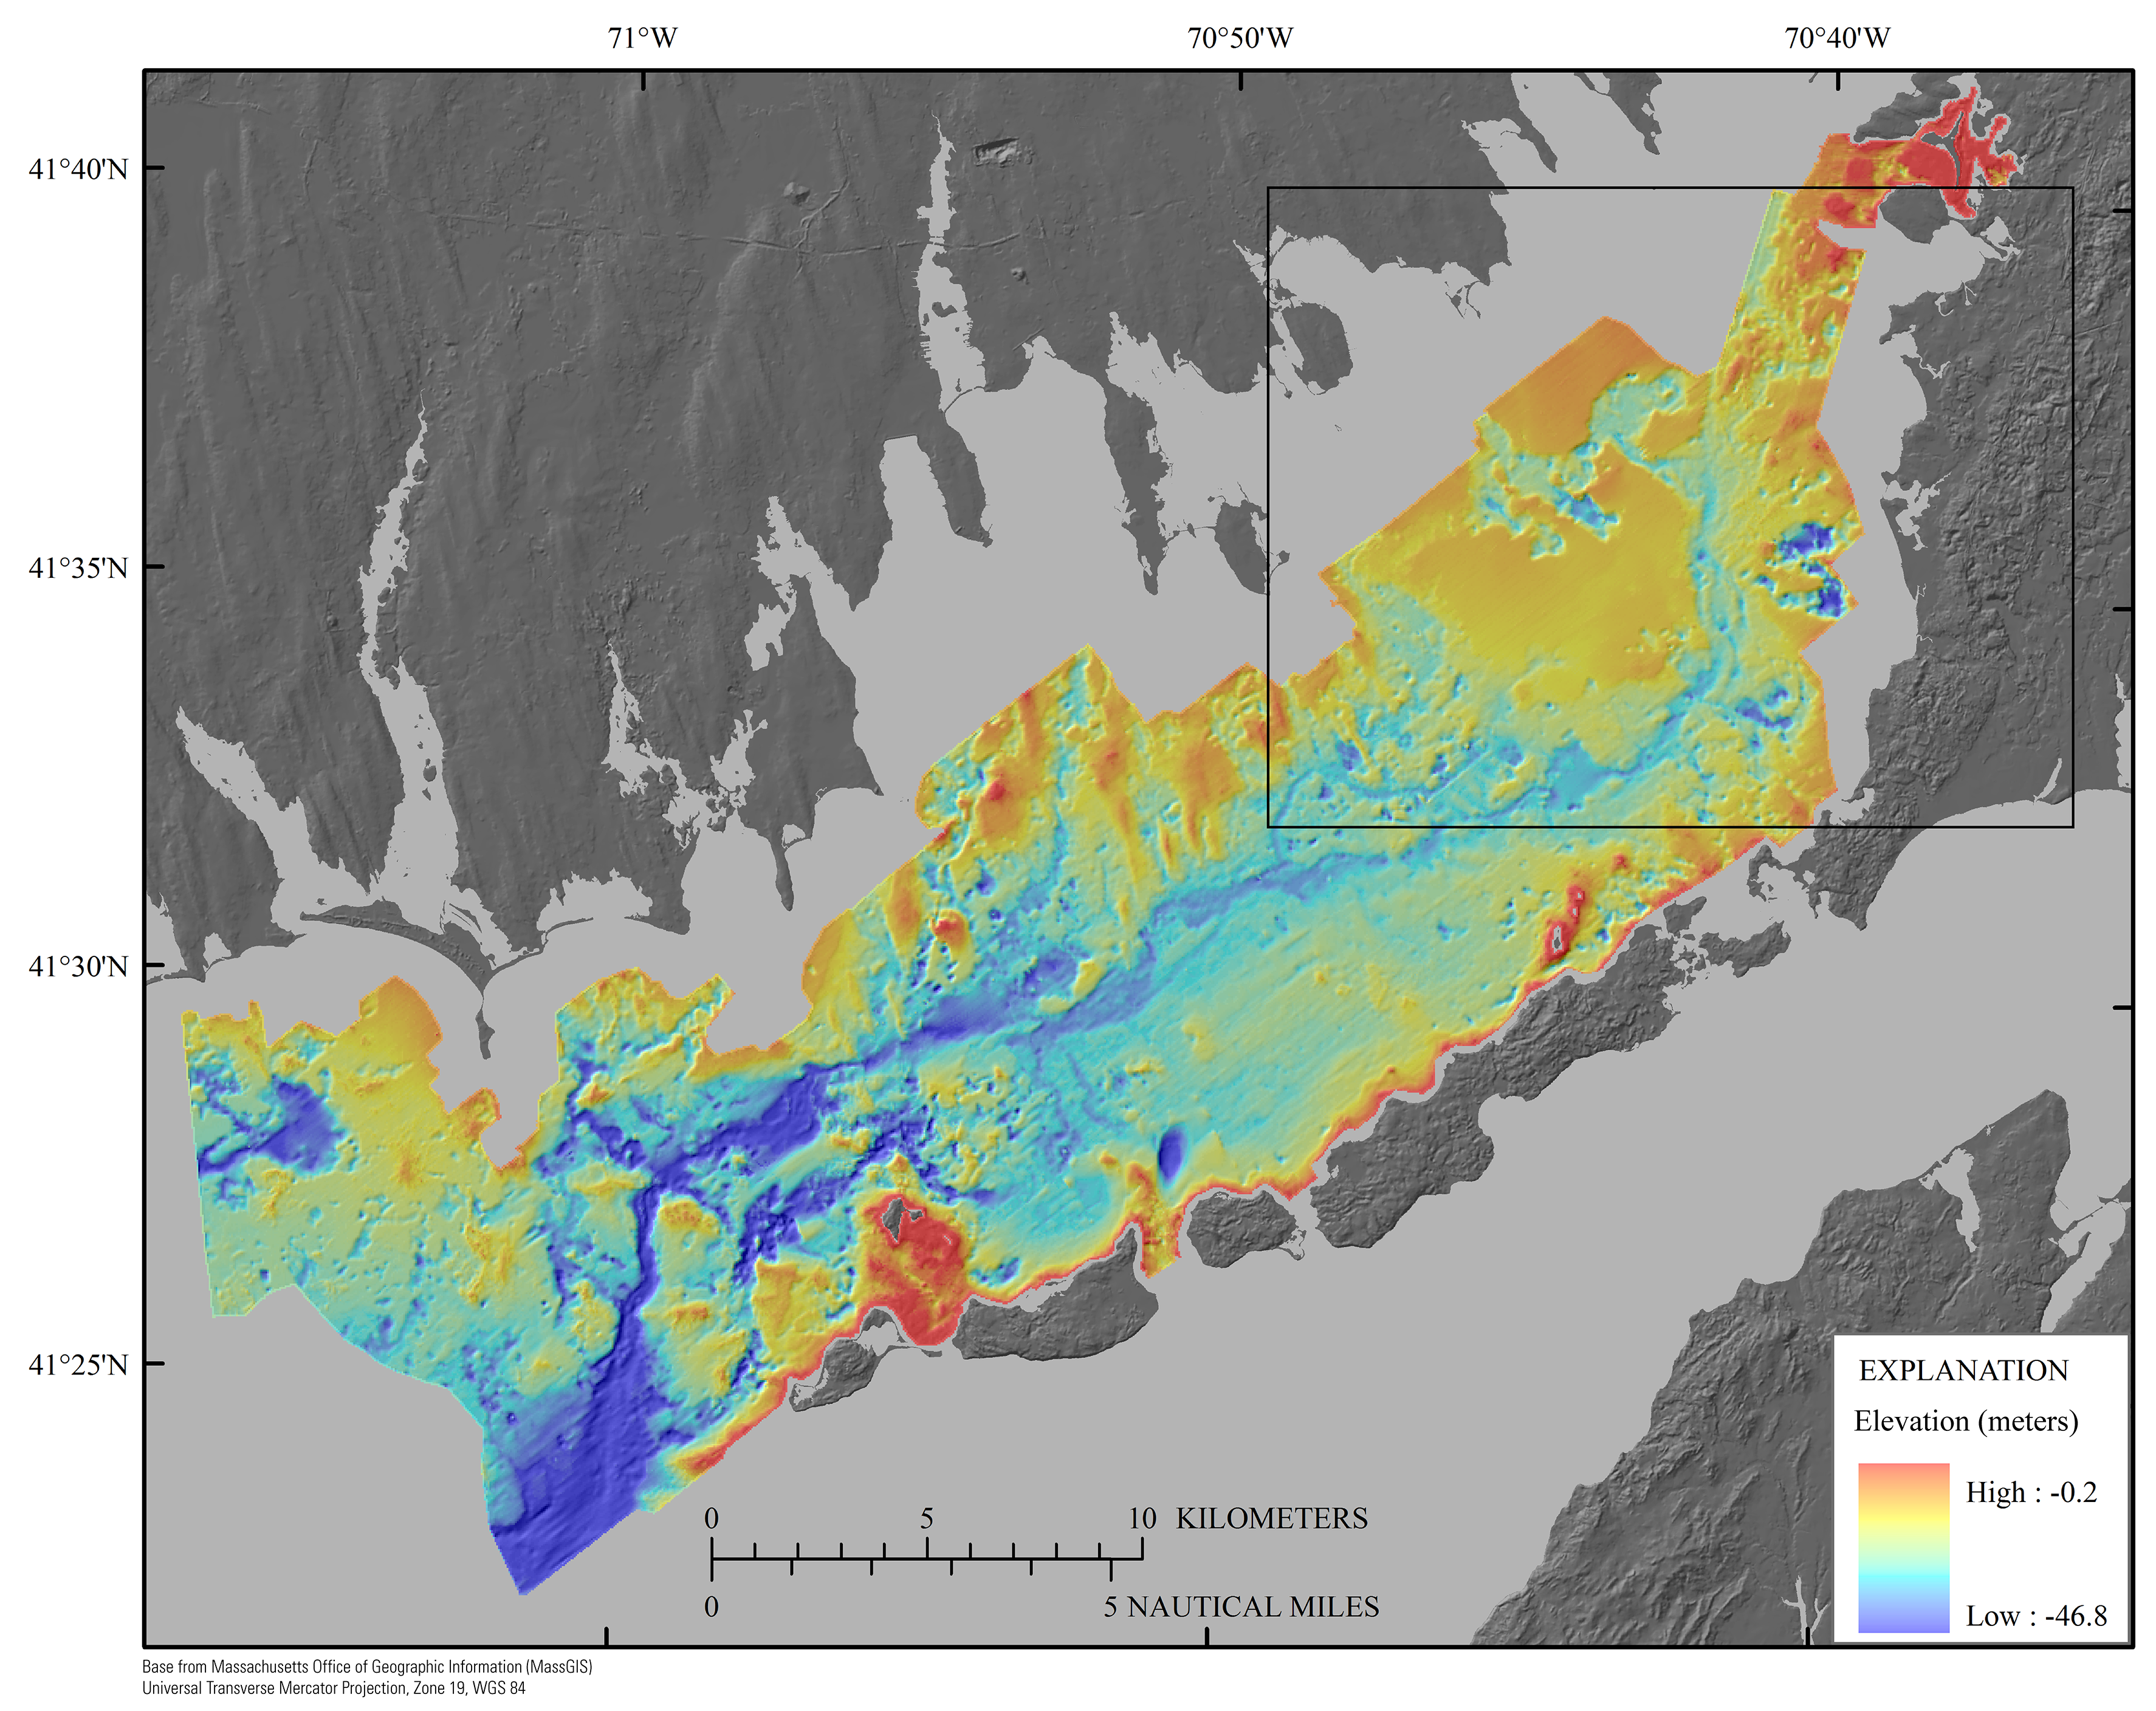 Sea Floor Elevation Map : Shallow geology sea floor texture and physiographic